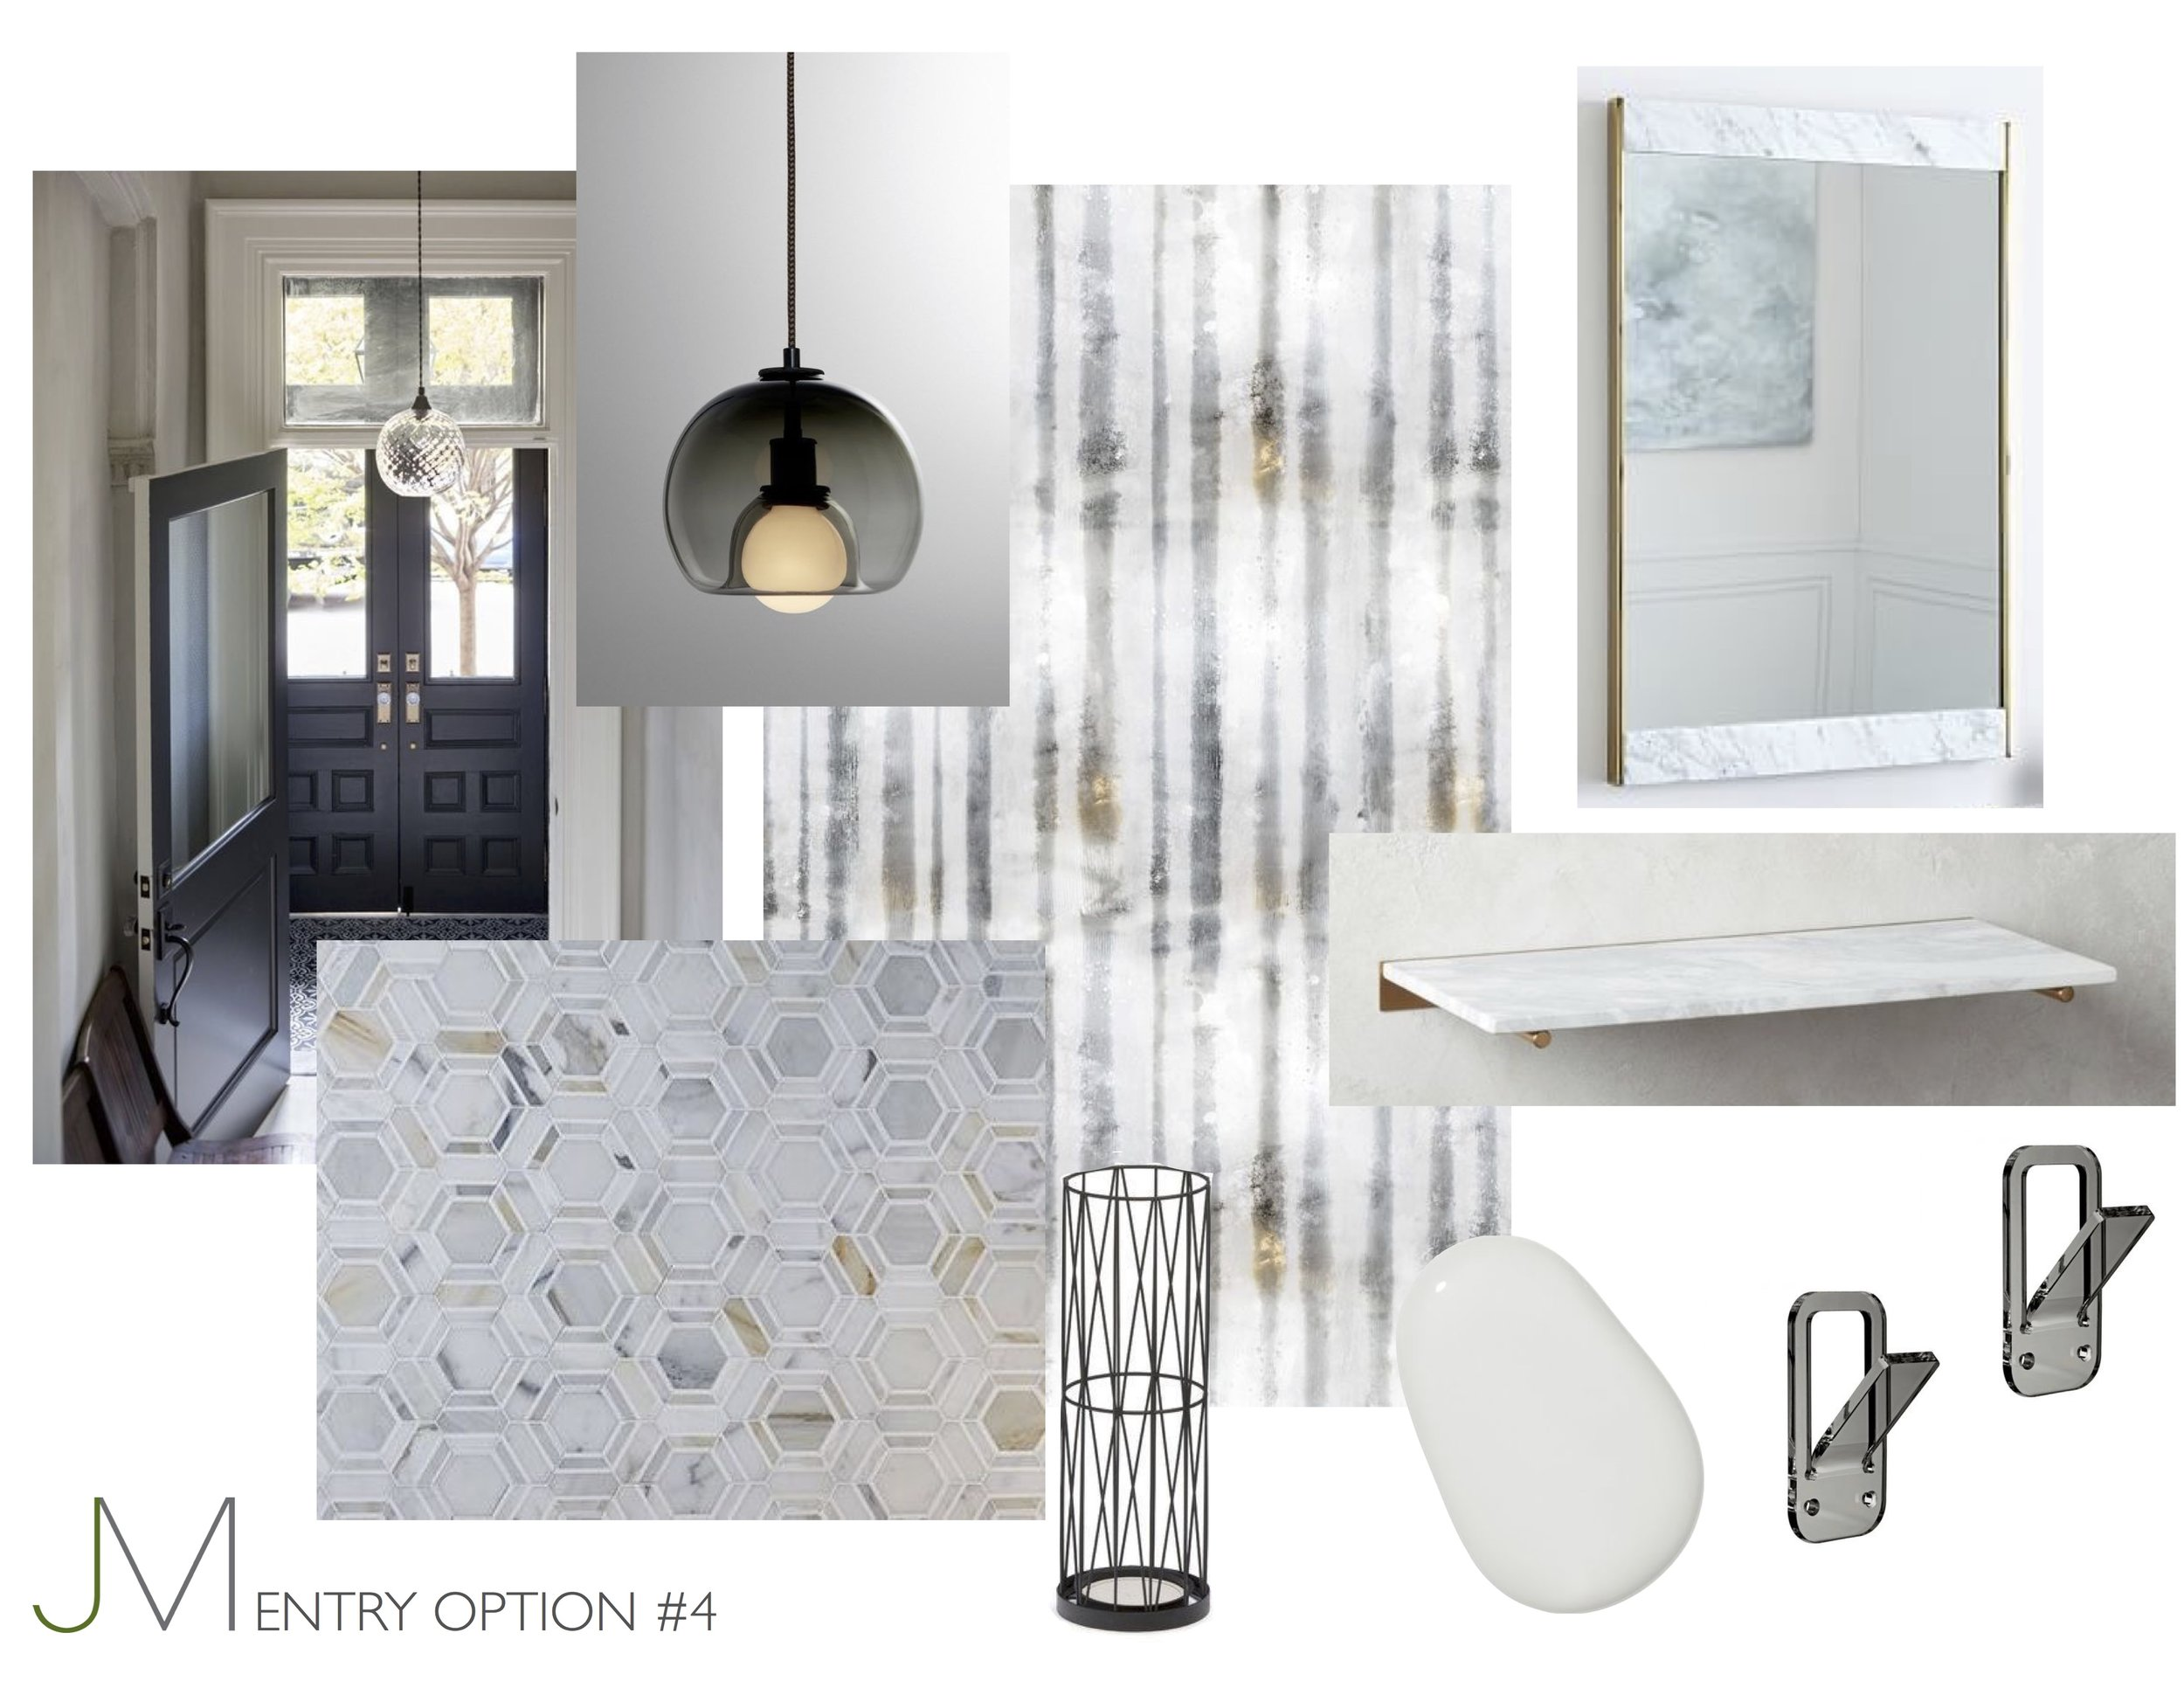 Iridescent Luxury - Walking into this entry is like taking a mind trip to marble quarries in Italy, the ultimate luxury walking in the door. The wallpaper plays off the tones in the tile and the light fixture ties them both together beautifully.